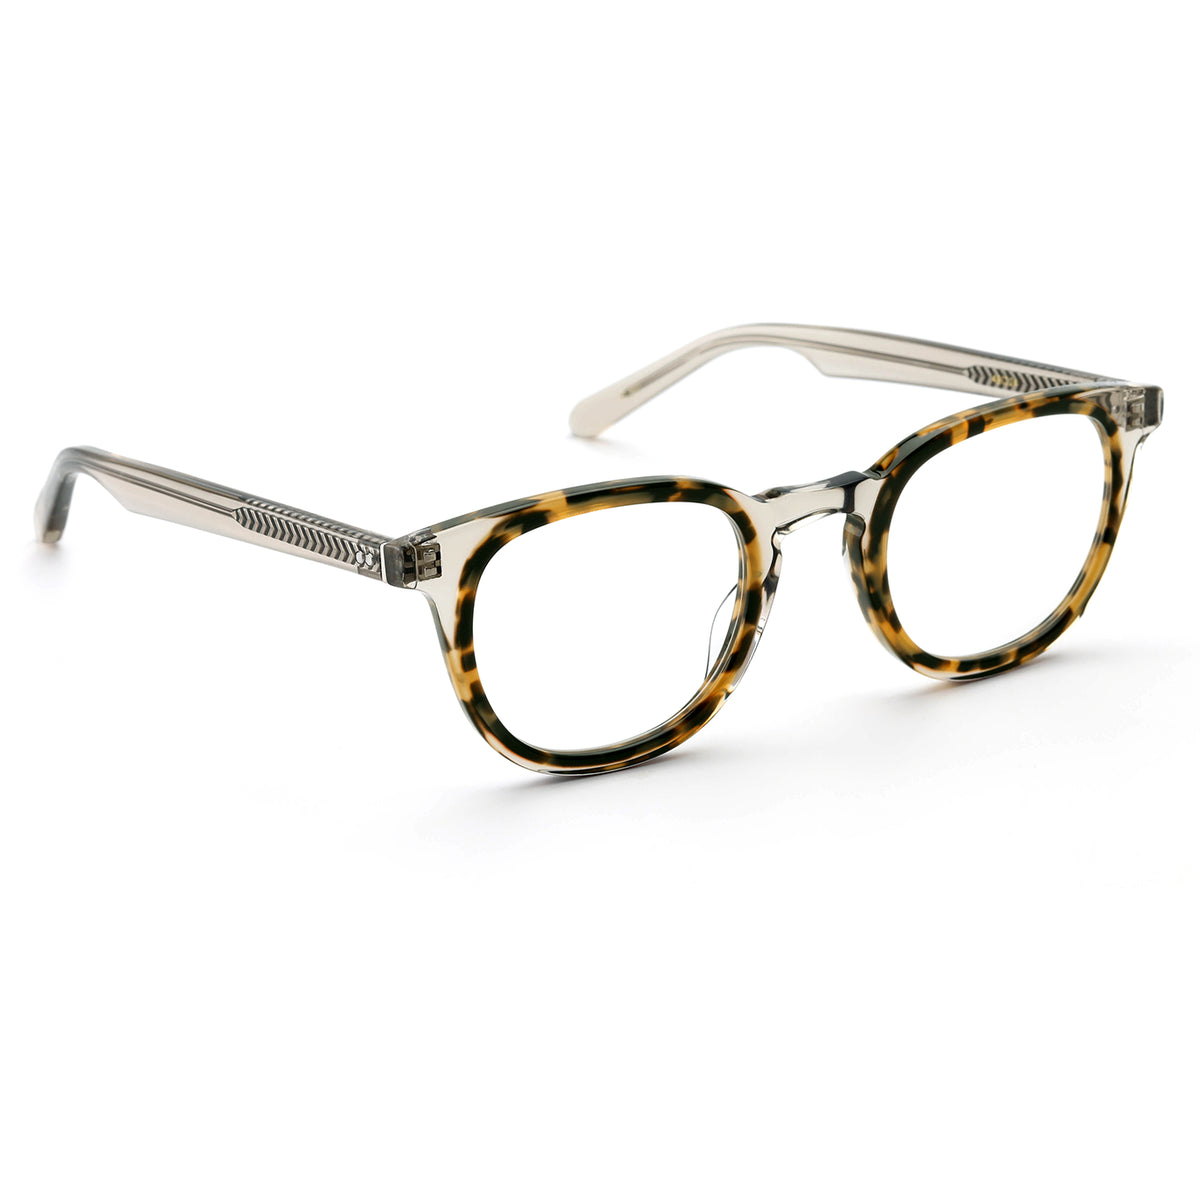 ELM | Brume to Blonde Tortoise - handcrafted acetate eyewear